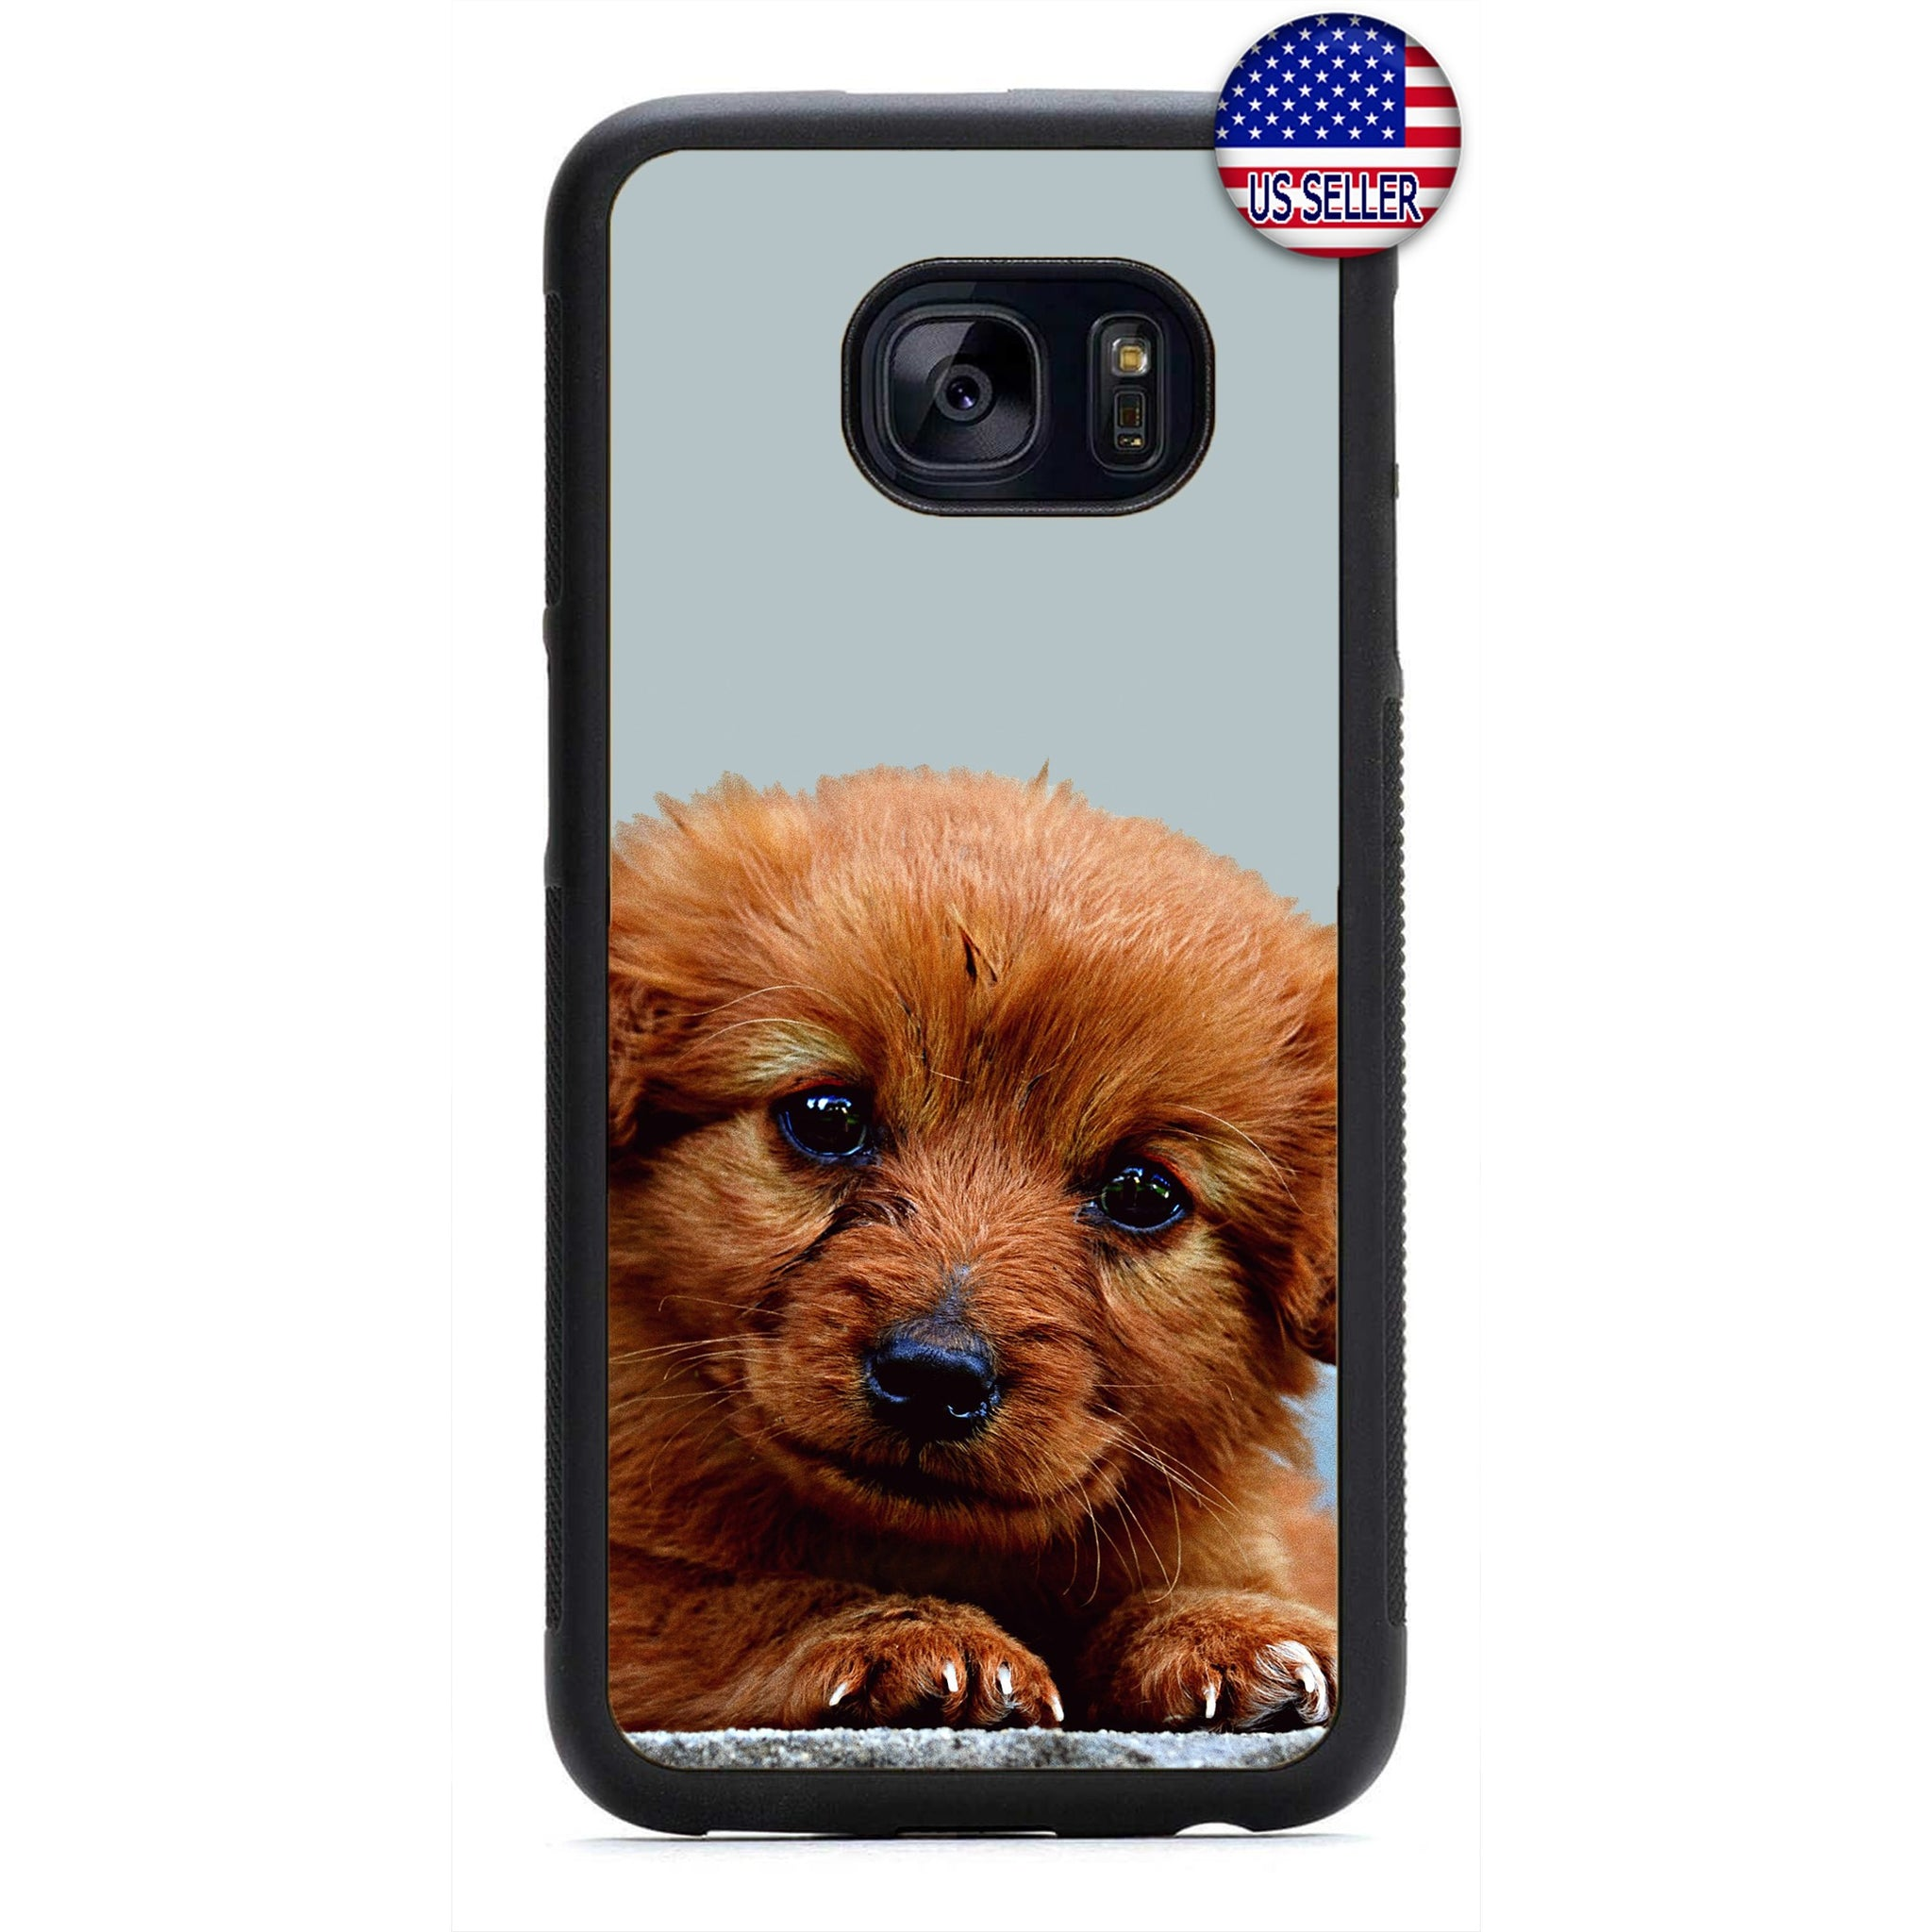 Paws Cute Puppy Dog Pet Rubber Case Cover For Samsung Galaxy